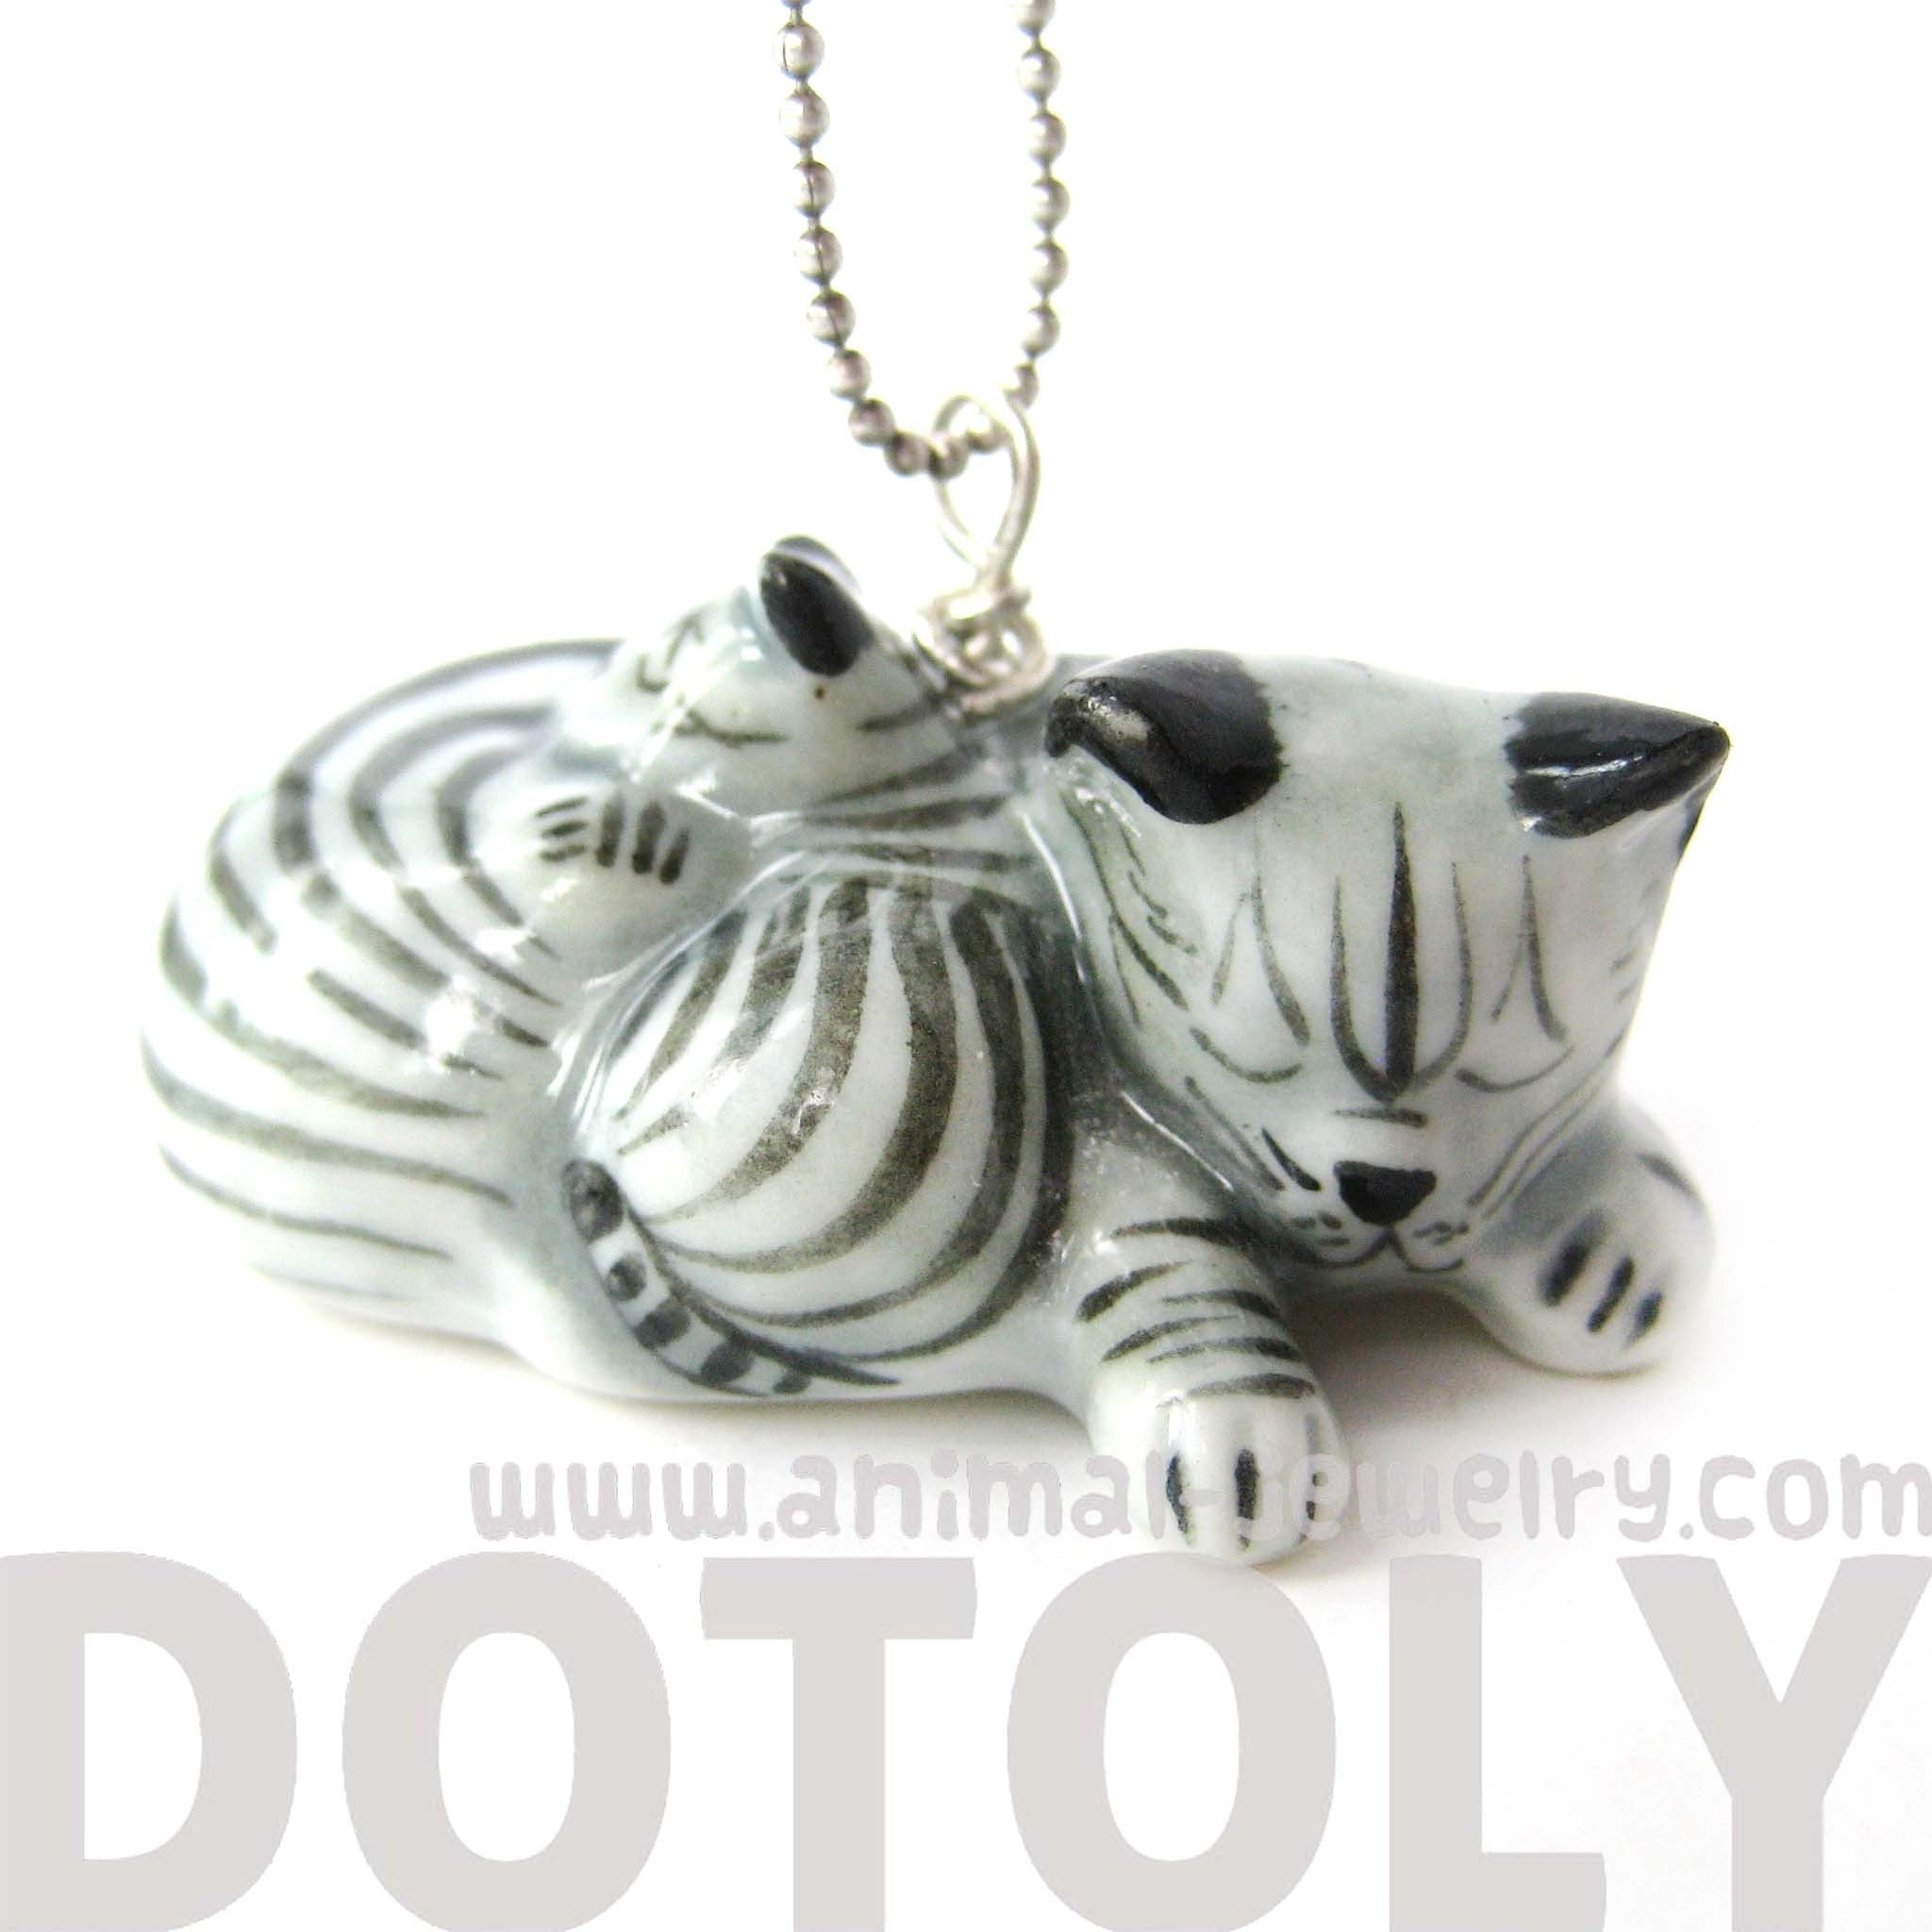 mother-and-baby-kitty-cat-porcelain-ceramic-animal-pendant-necklace-handmade